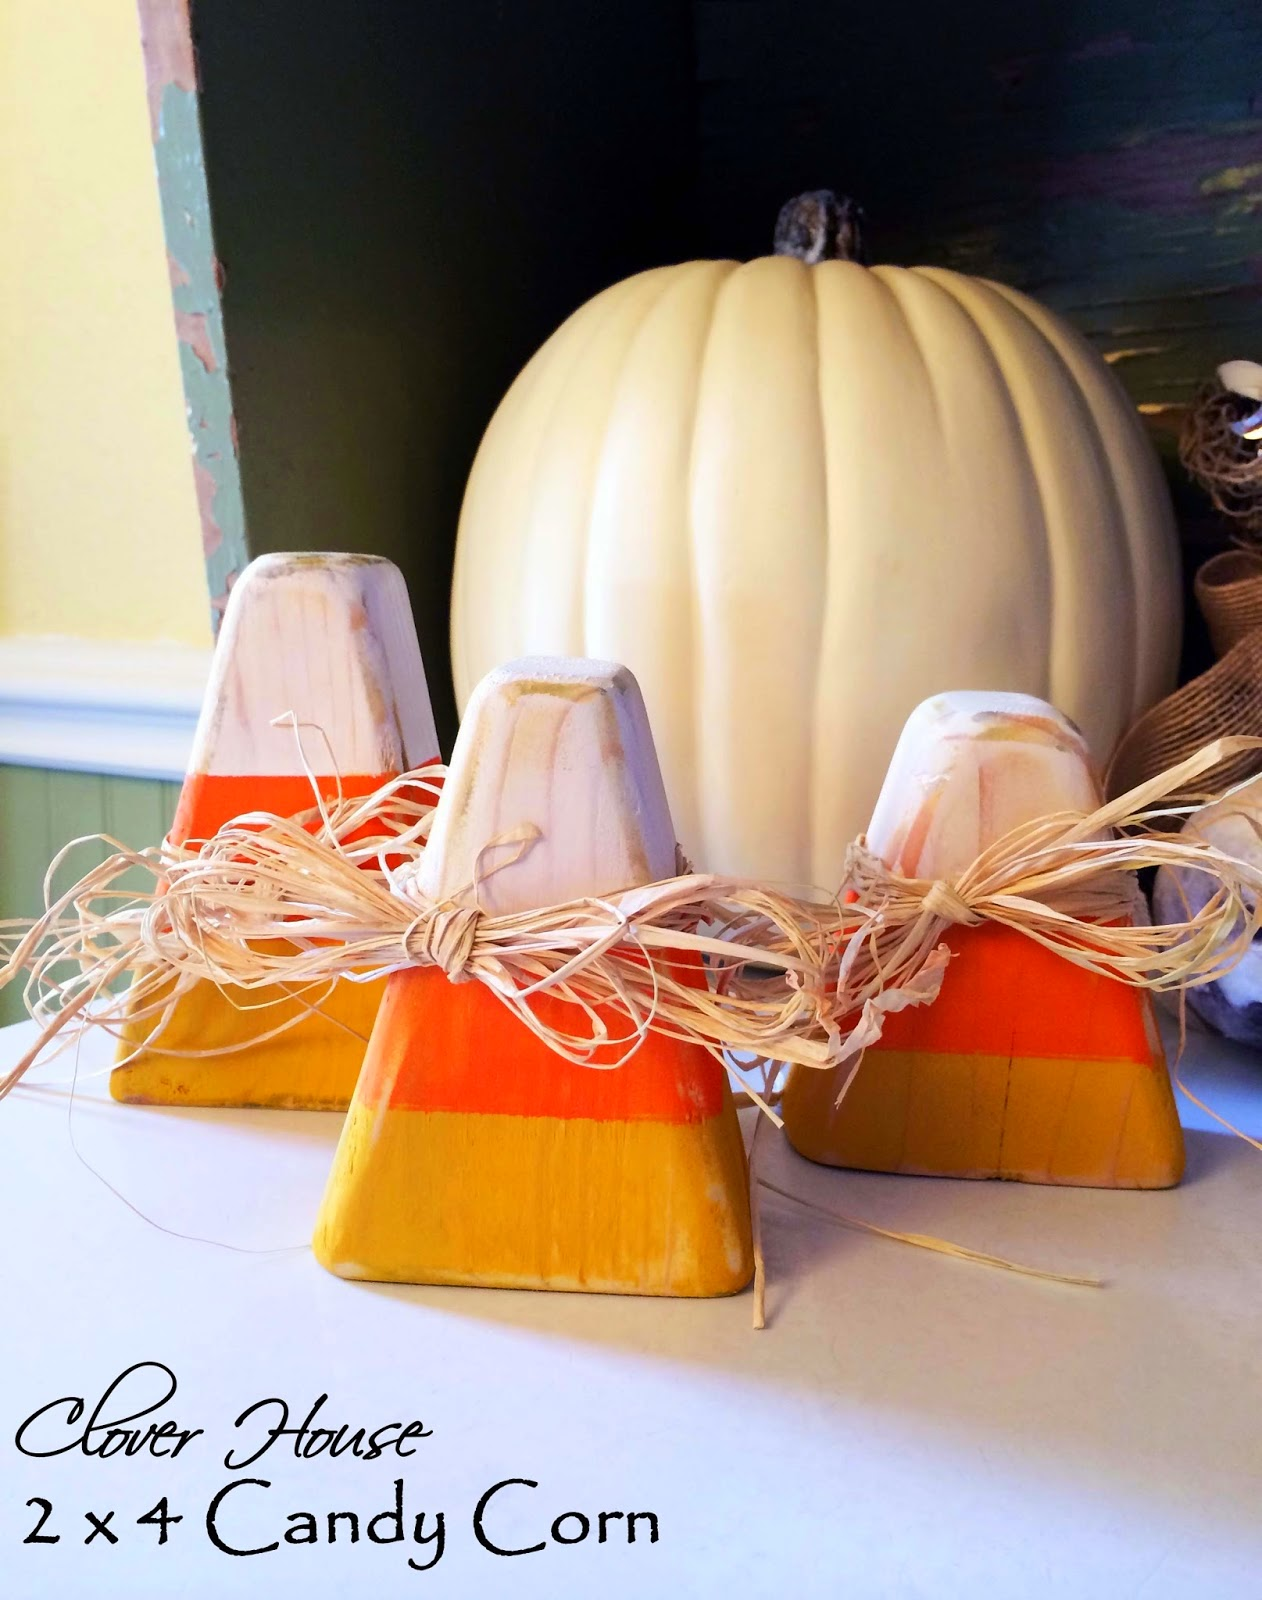 2x4 Candy Corn Tutorial, shared by Our Clover House